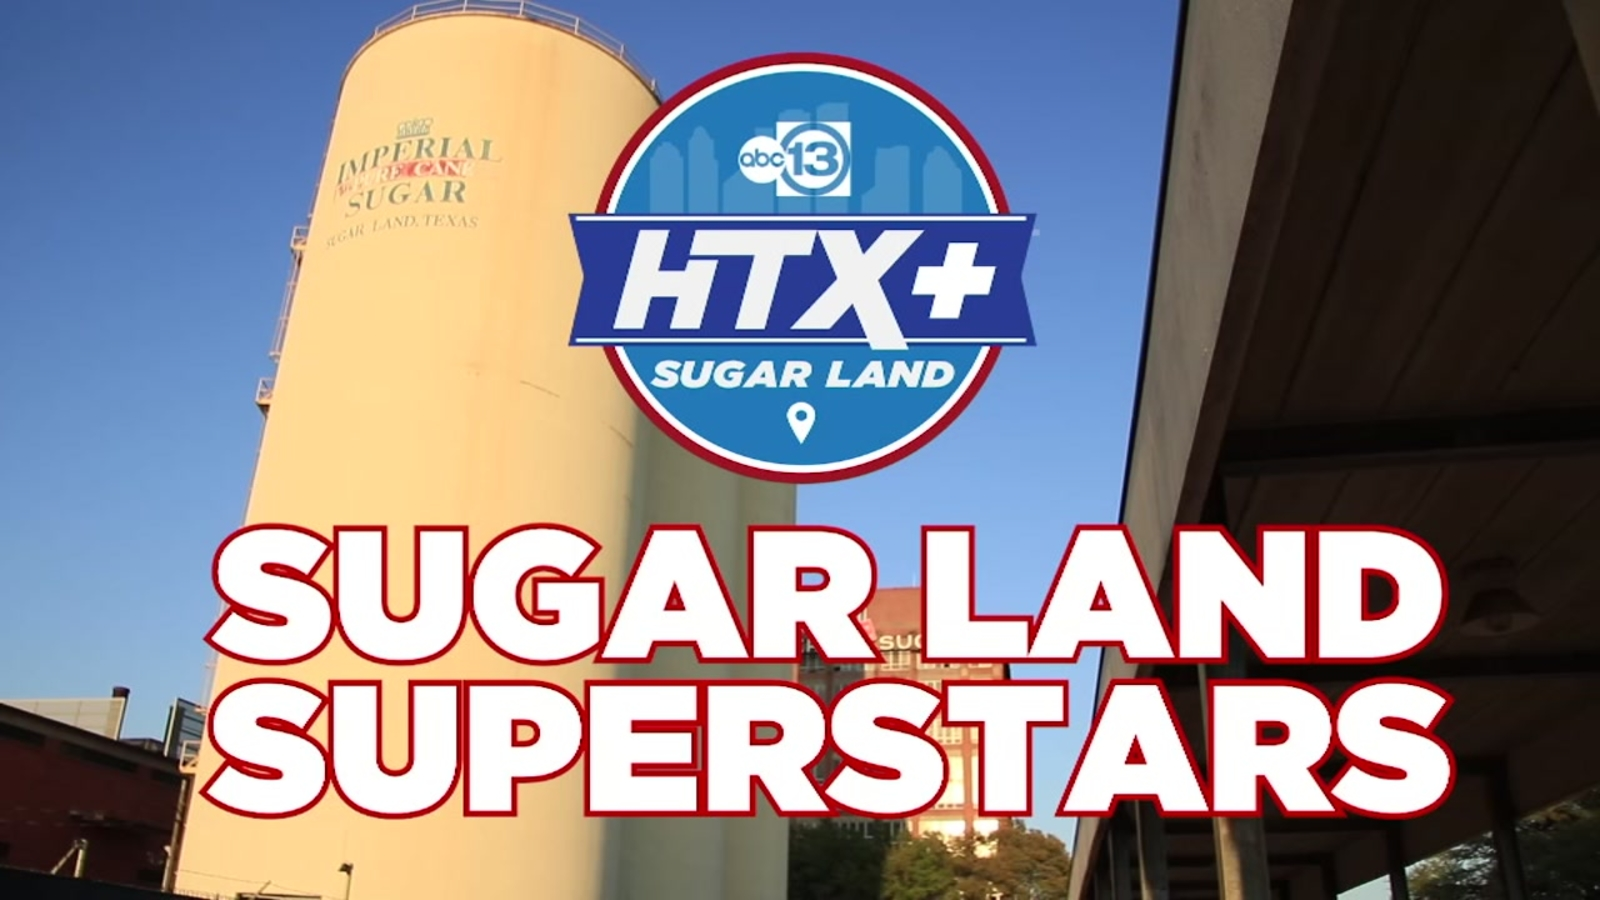 Sean Patrick Flanery, Hakeem Olajuwon and more celebrities from Sugar Land, Texas | abc13.com